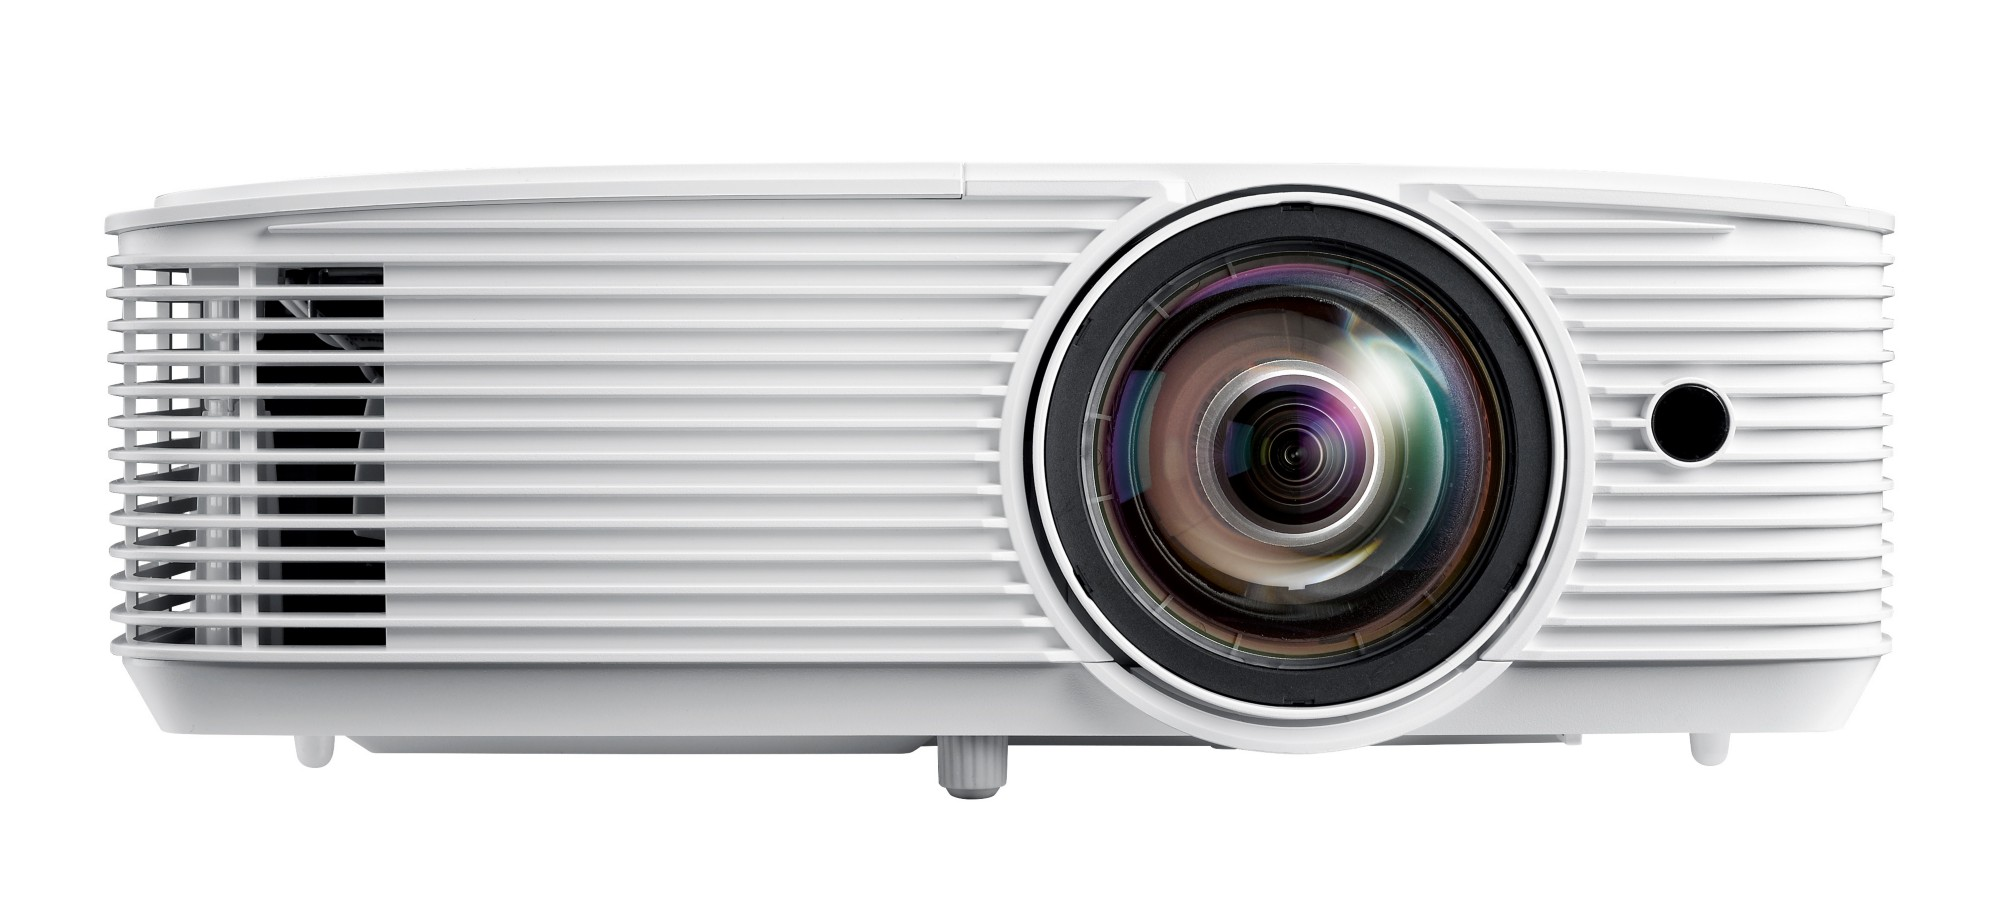 Optoma W308STe data projector 3600 ANSI lumens DLP WXGA (1280x800) 3D Desktop projector White